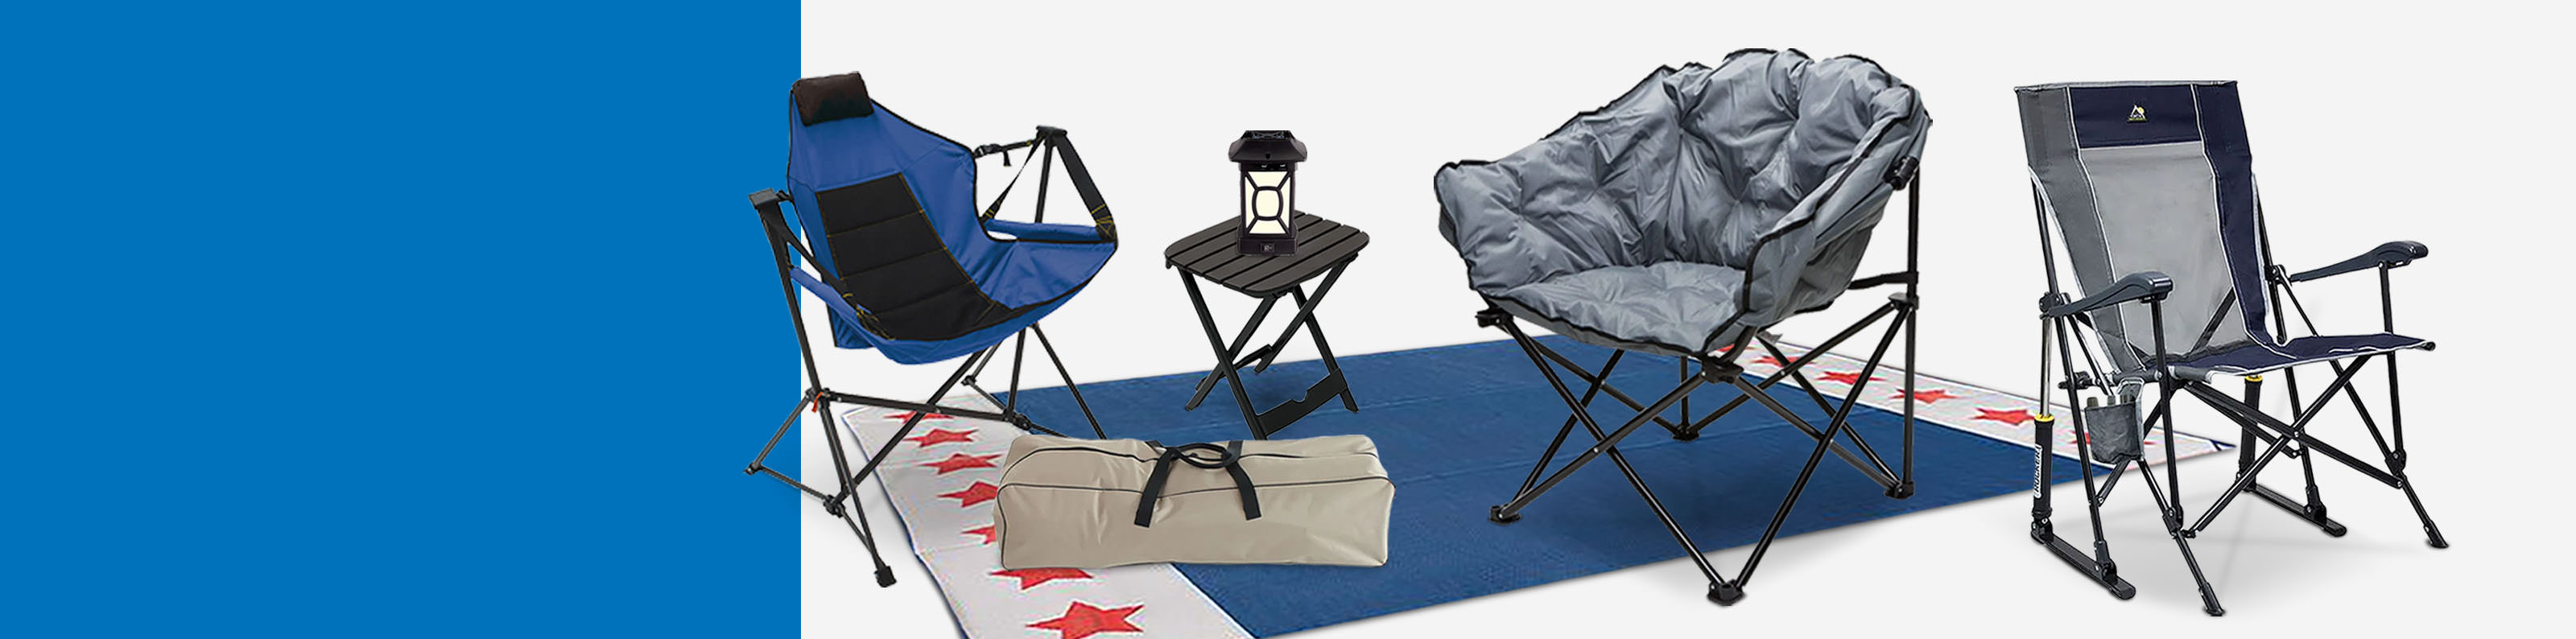 Sit Back & Relax! Up to 30% off Camp Furniture